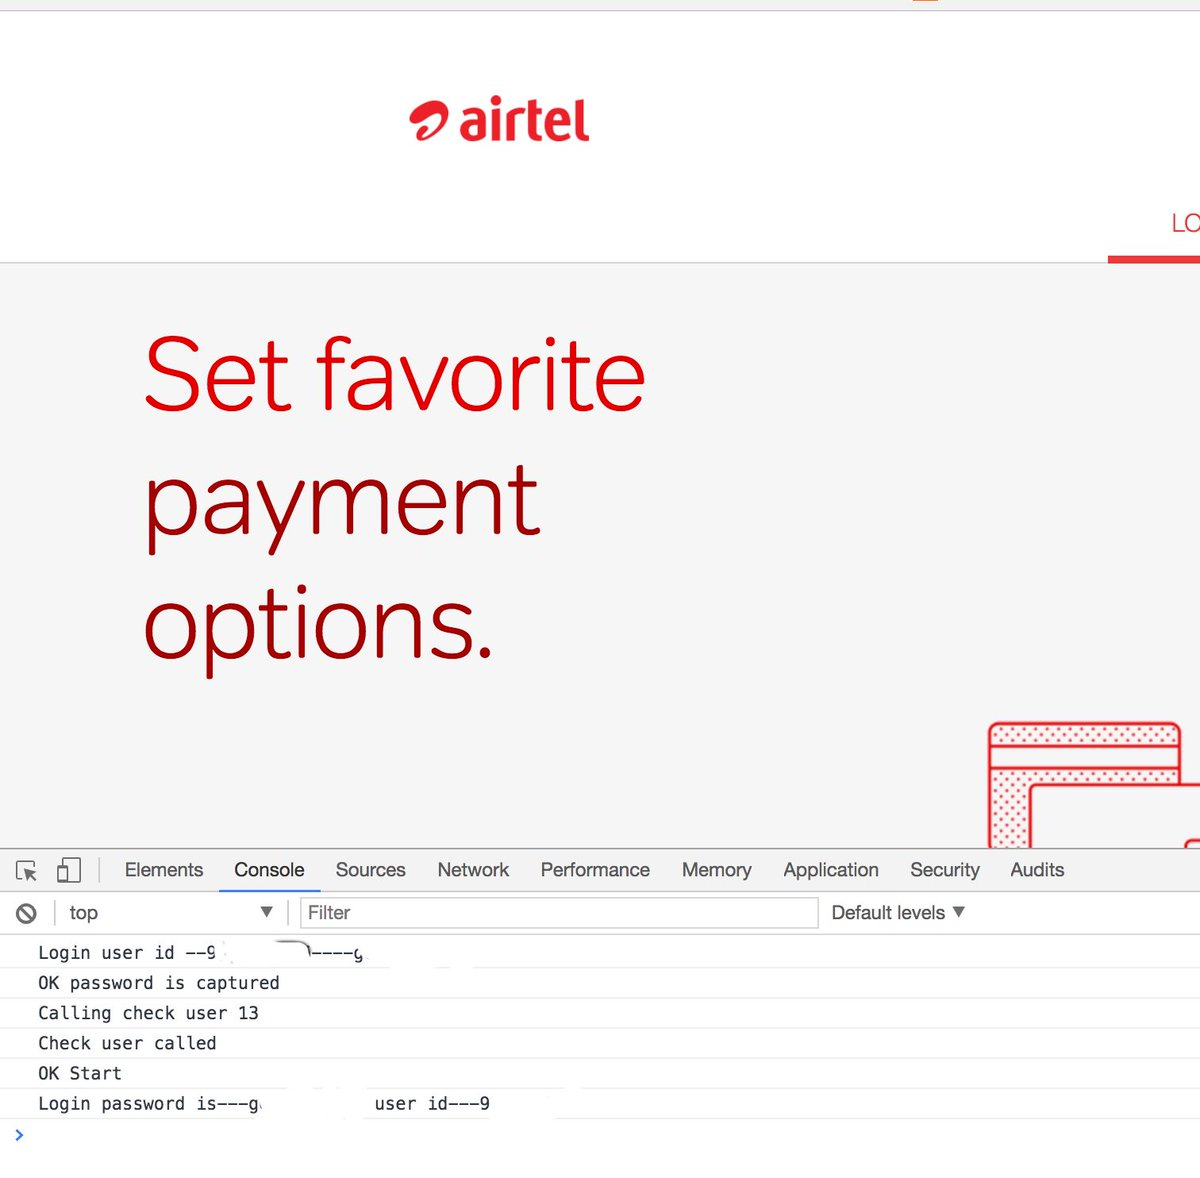 Have airtel account? Open the dev console and try logging in. See the magic in browser console log https://t.co/iY00fPrdDu